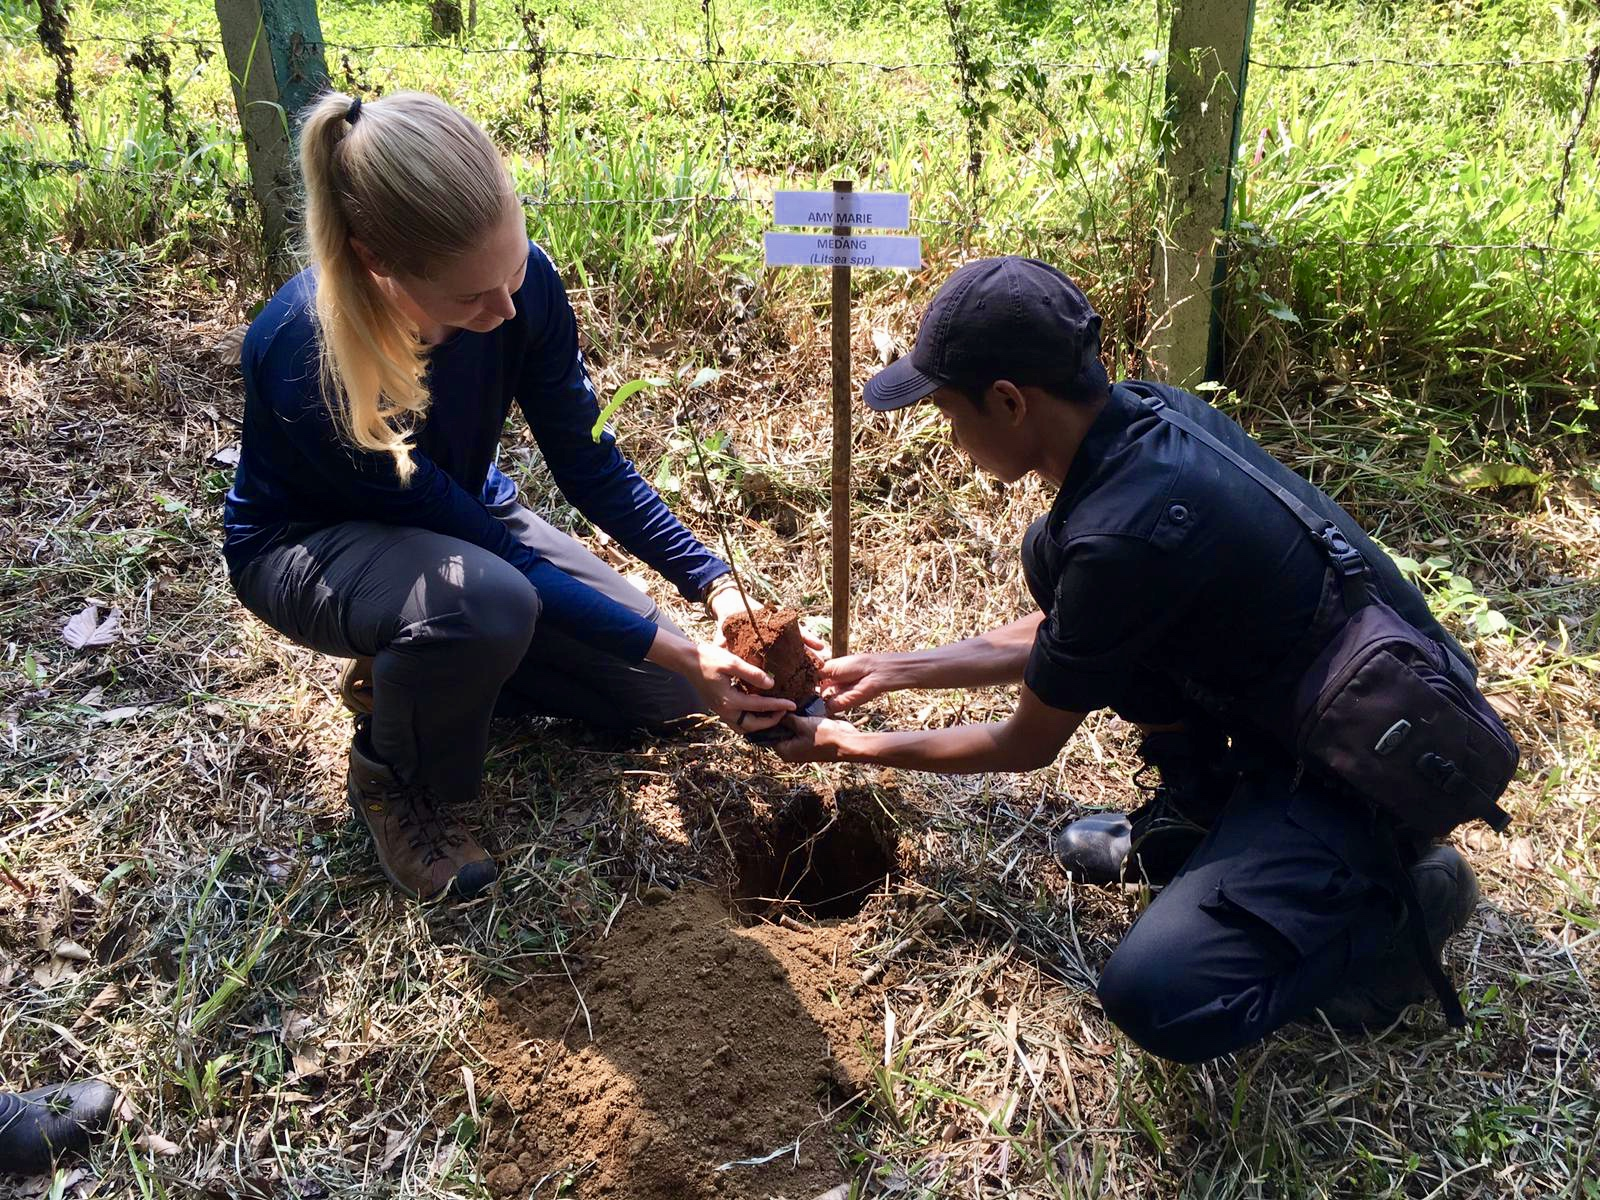 Planting a tree in the National Park